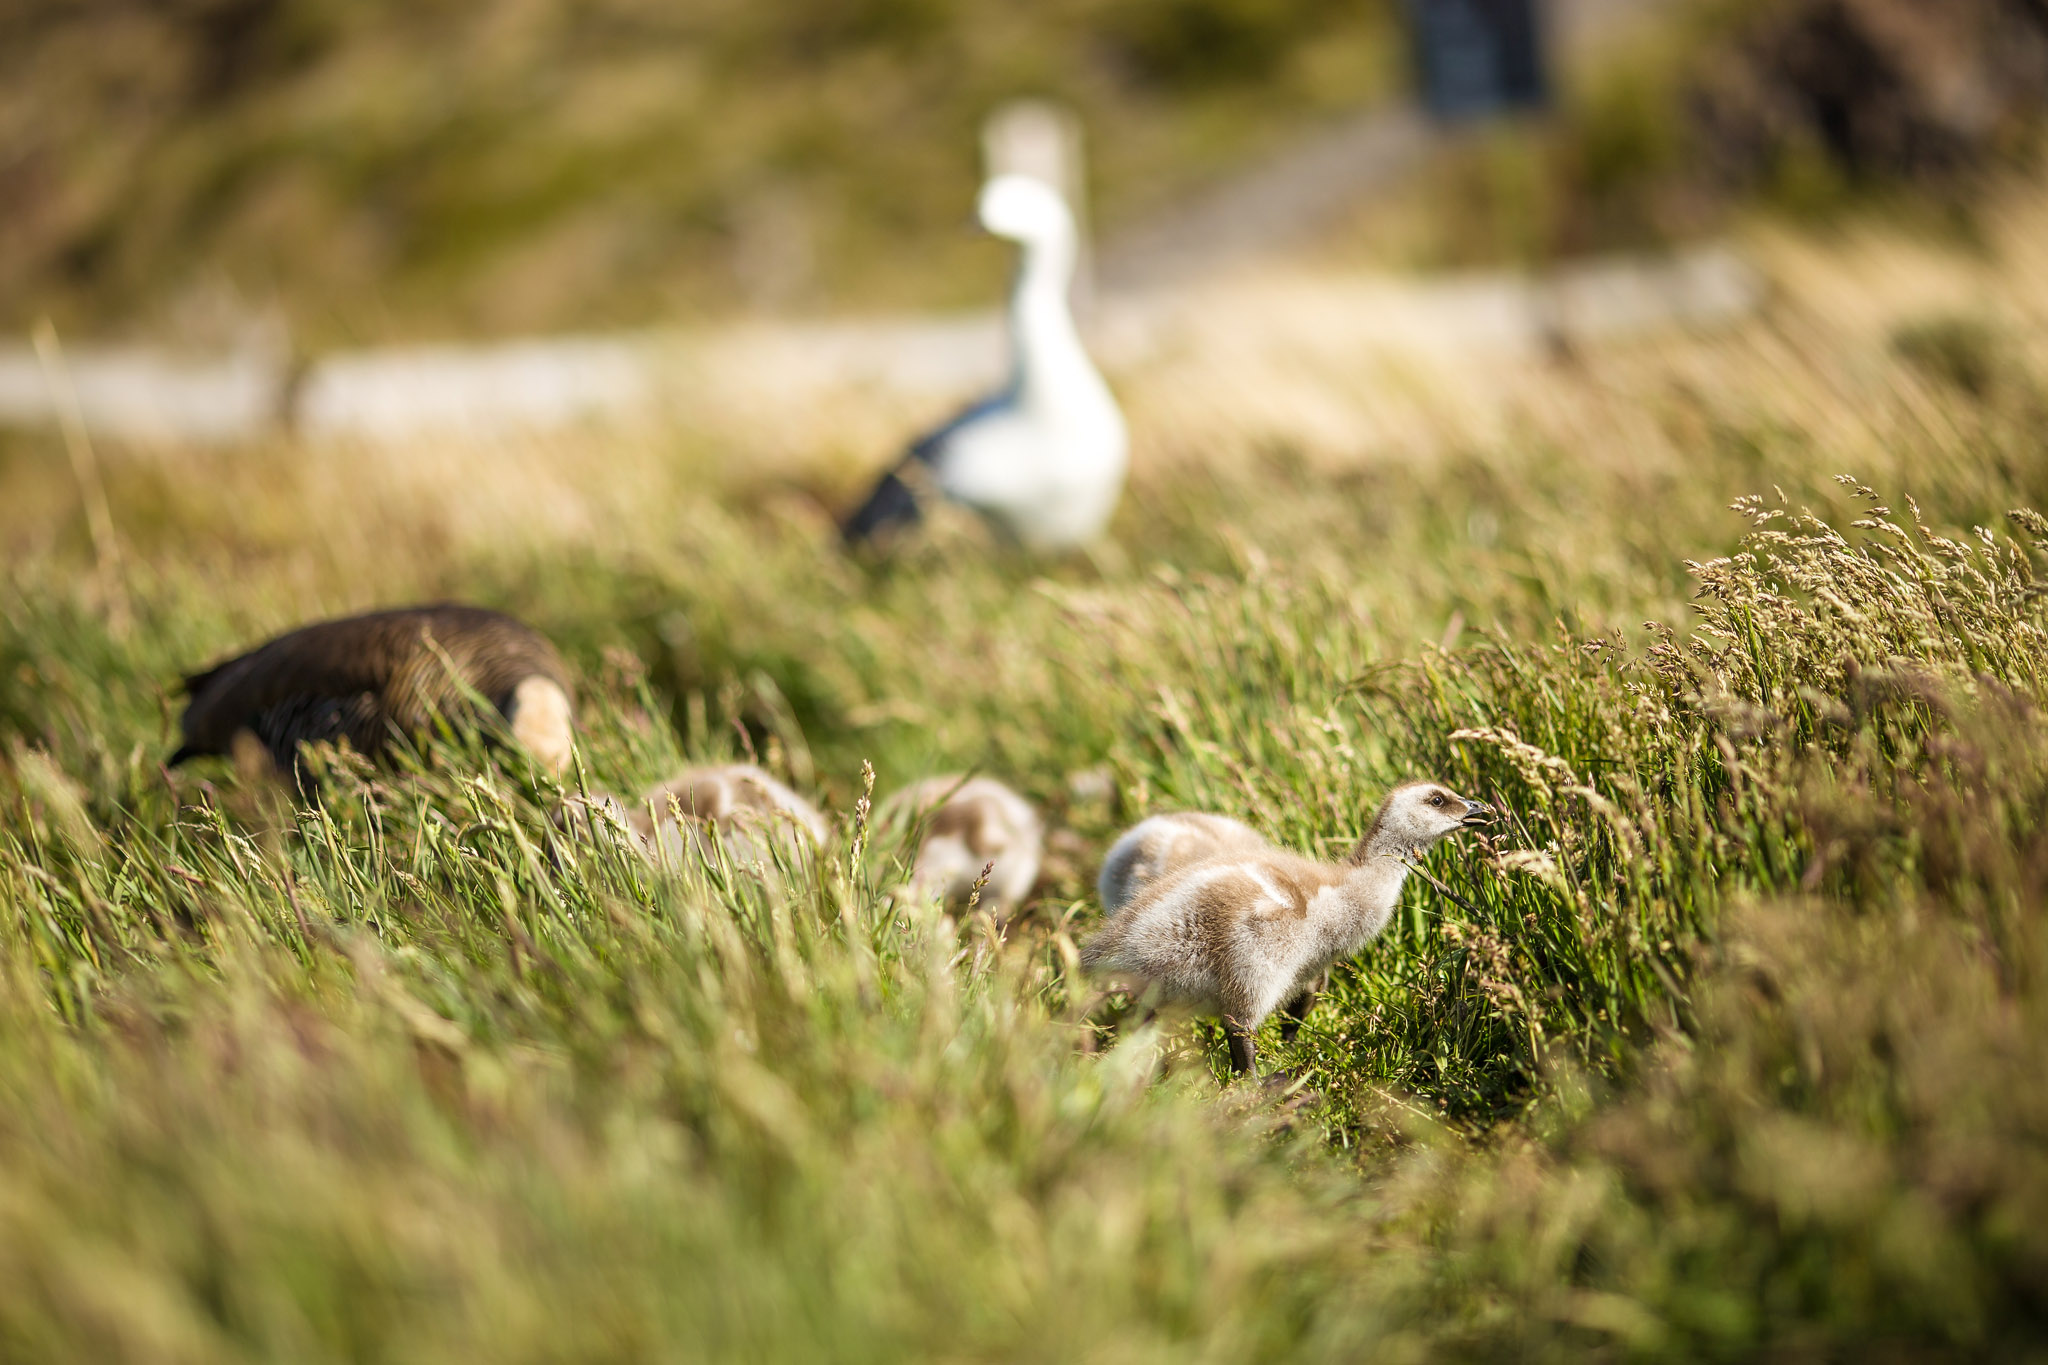 Wedding-Travellers-Overlanding-Destination-Wedding-Chile-Torres-del-Paine-Valle-wild-goose-bird-chicks-goslings-nature